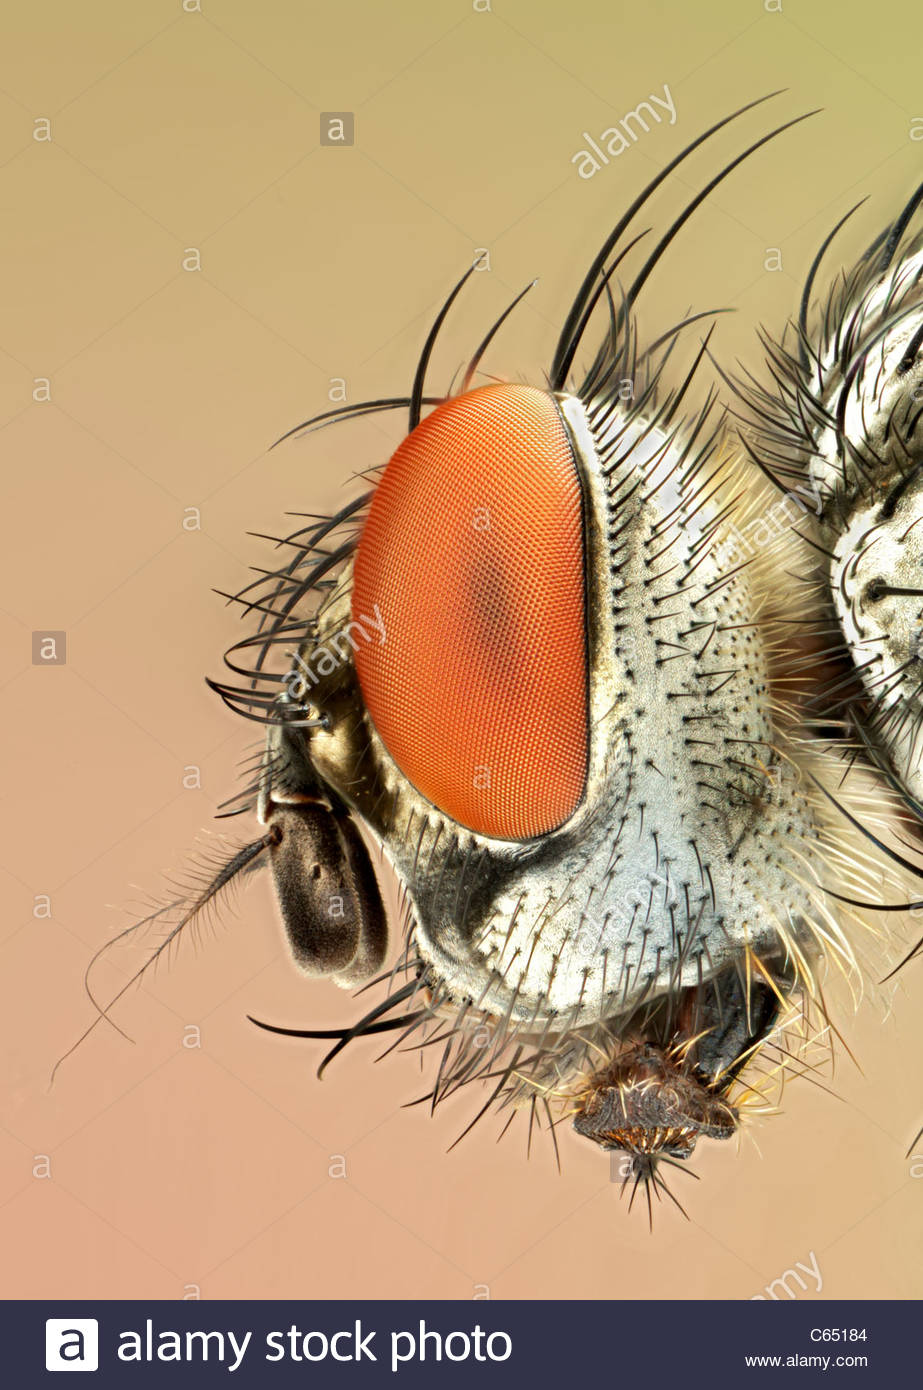 Chair-fly (Scatophaga sp.), close-up de tête. Photo Stock